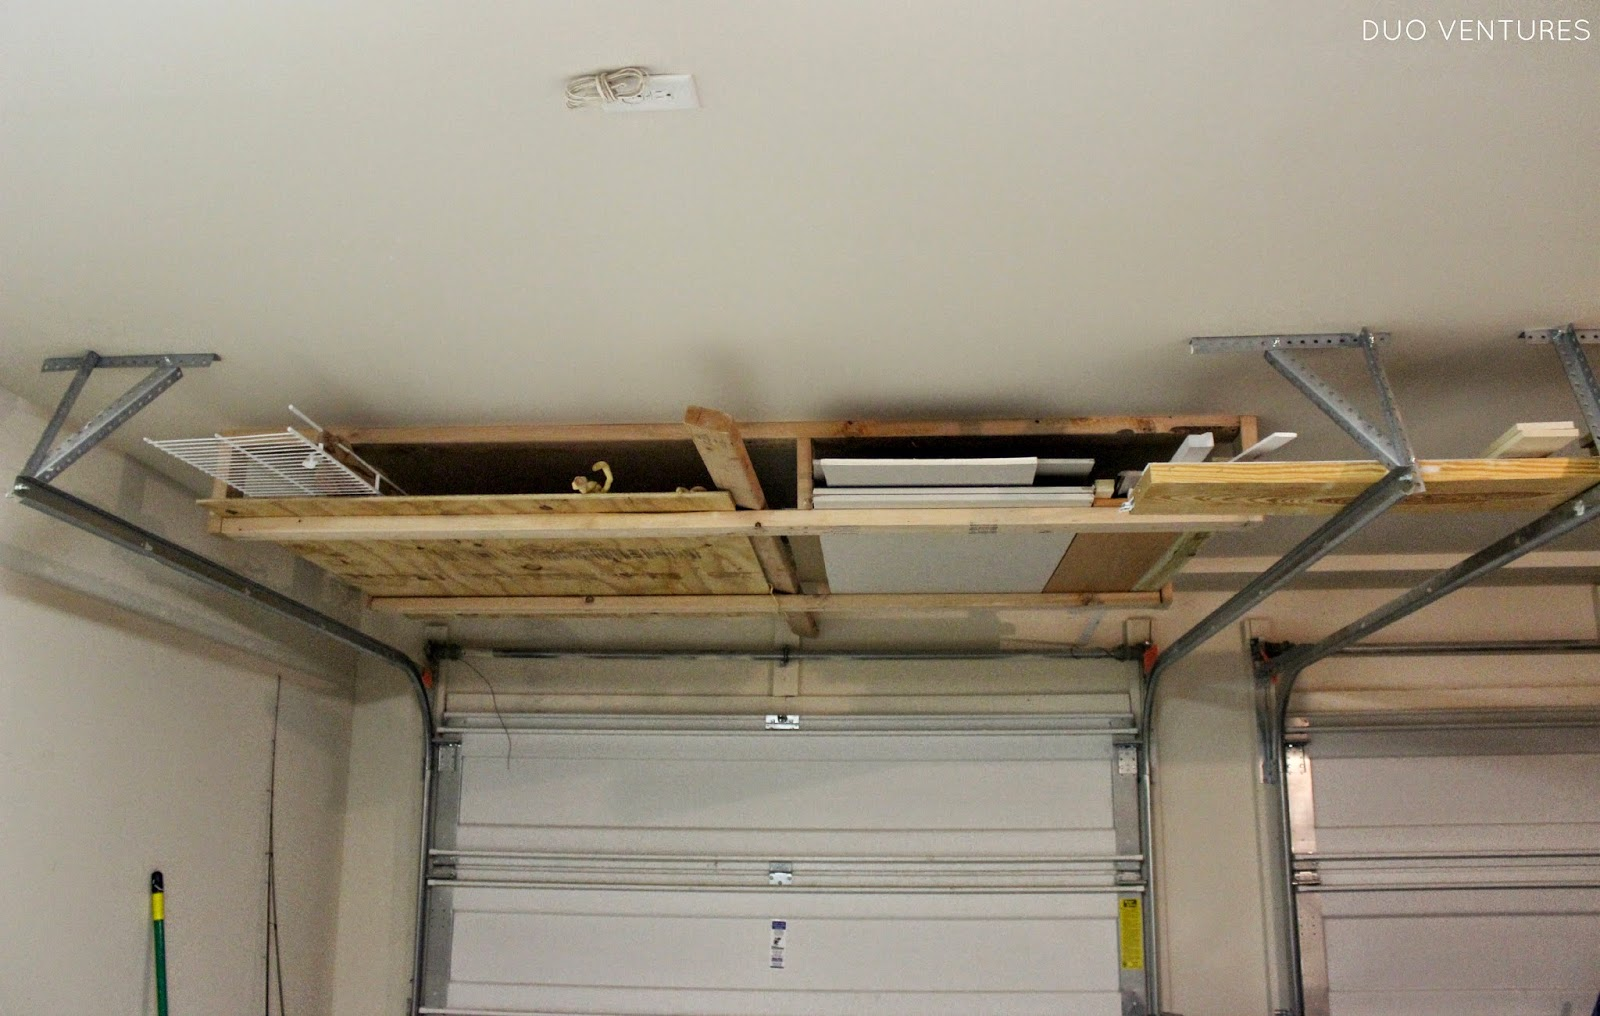 Duo Ventures The Garage Ceiling Storage